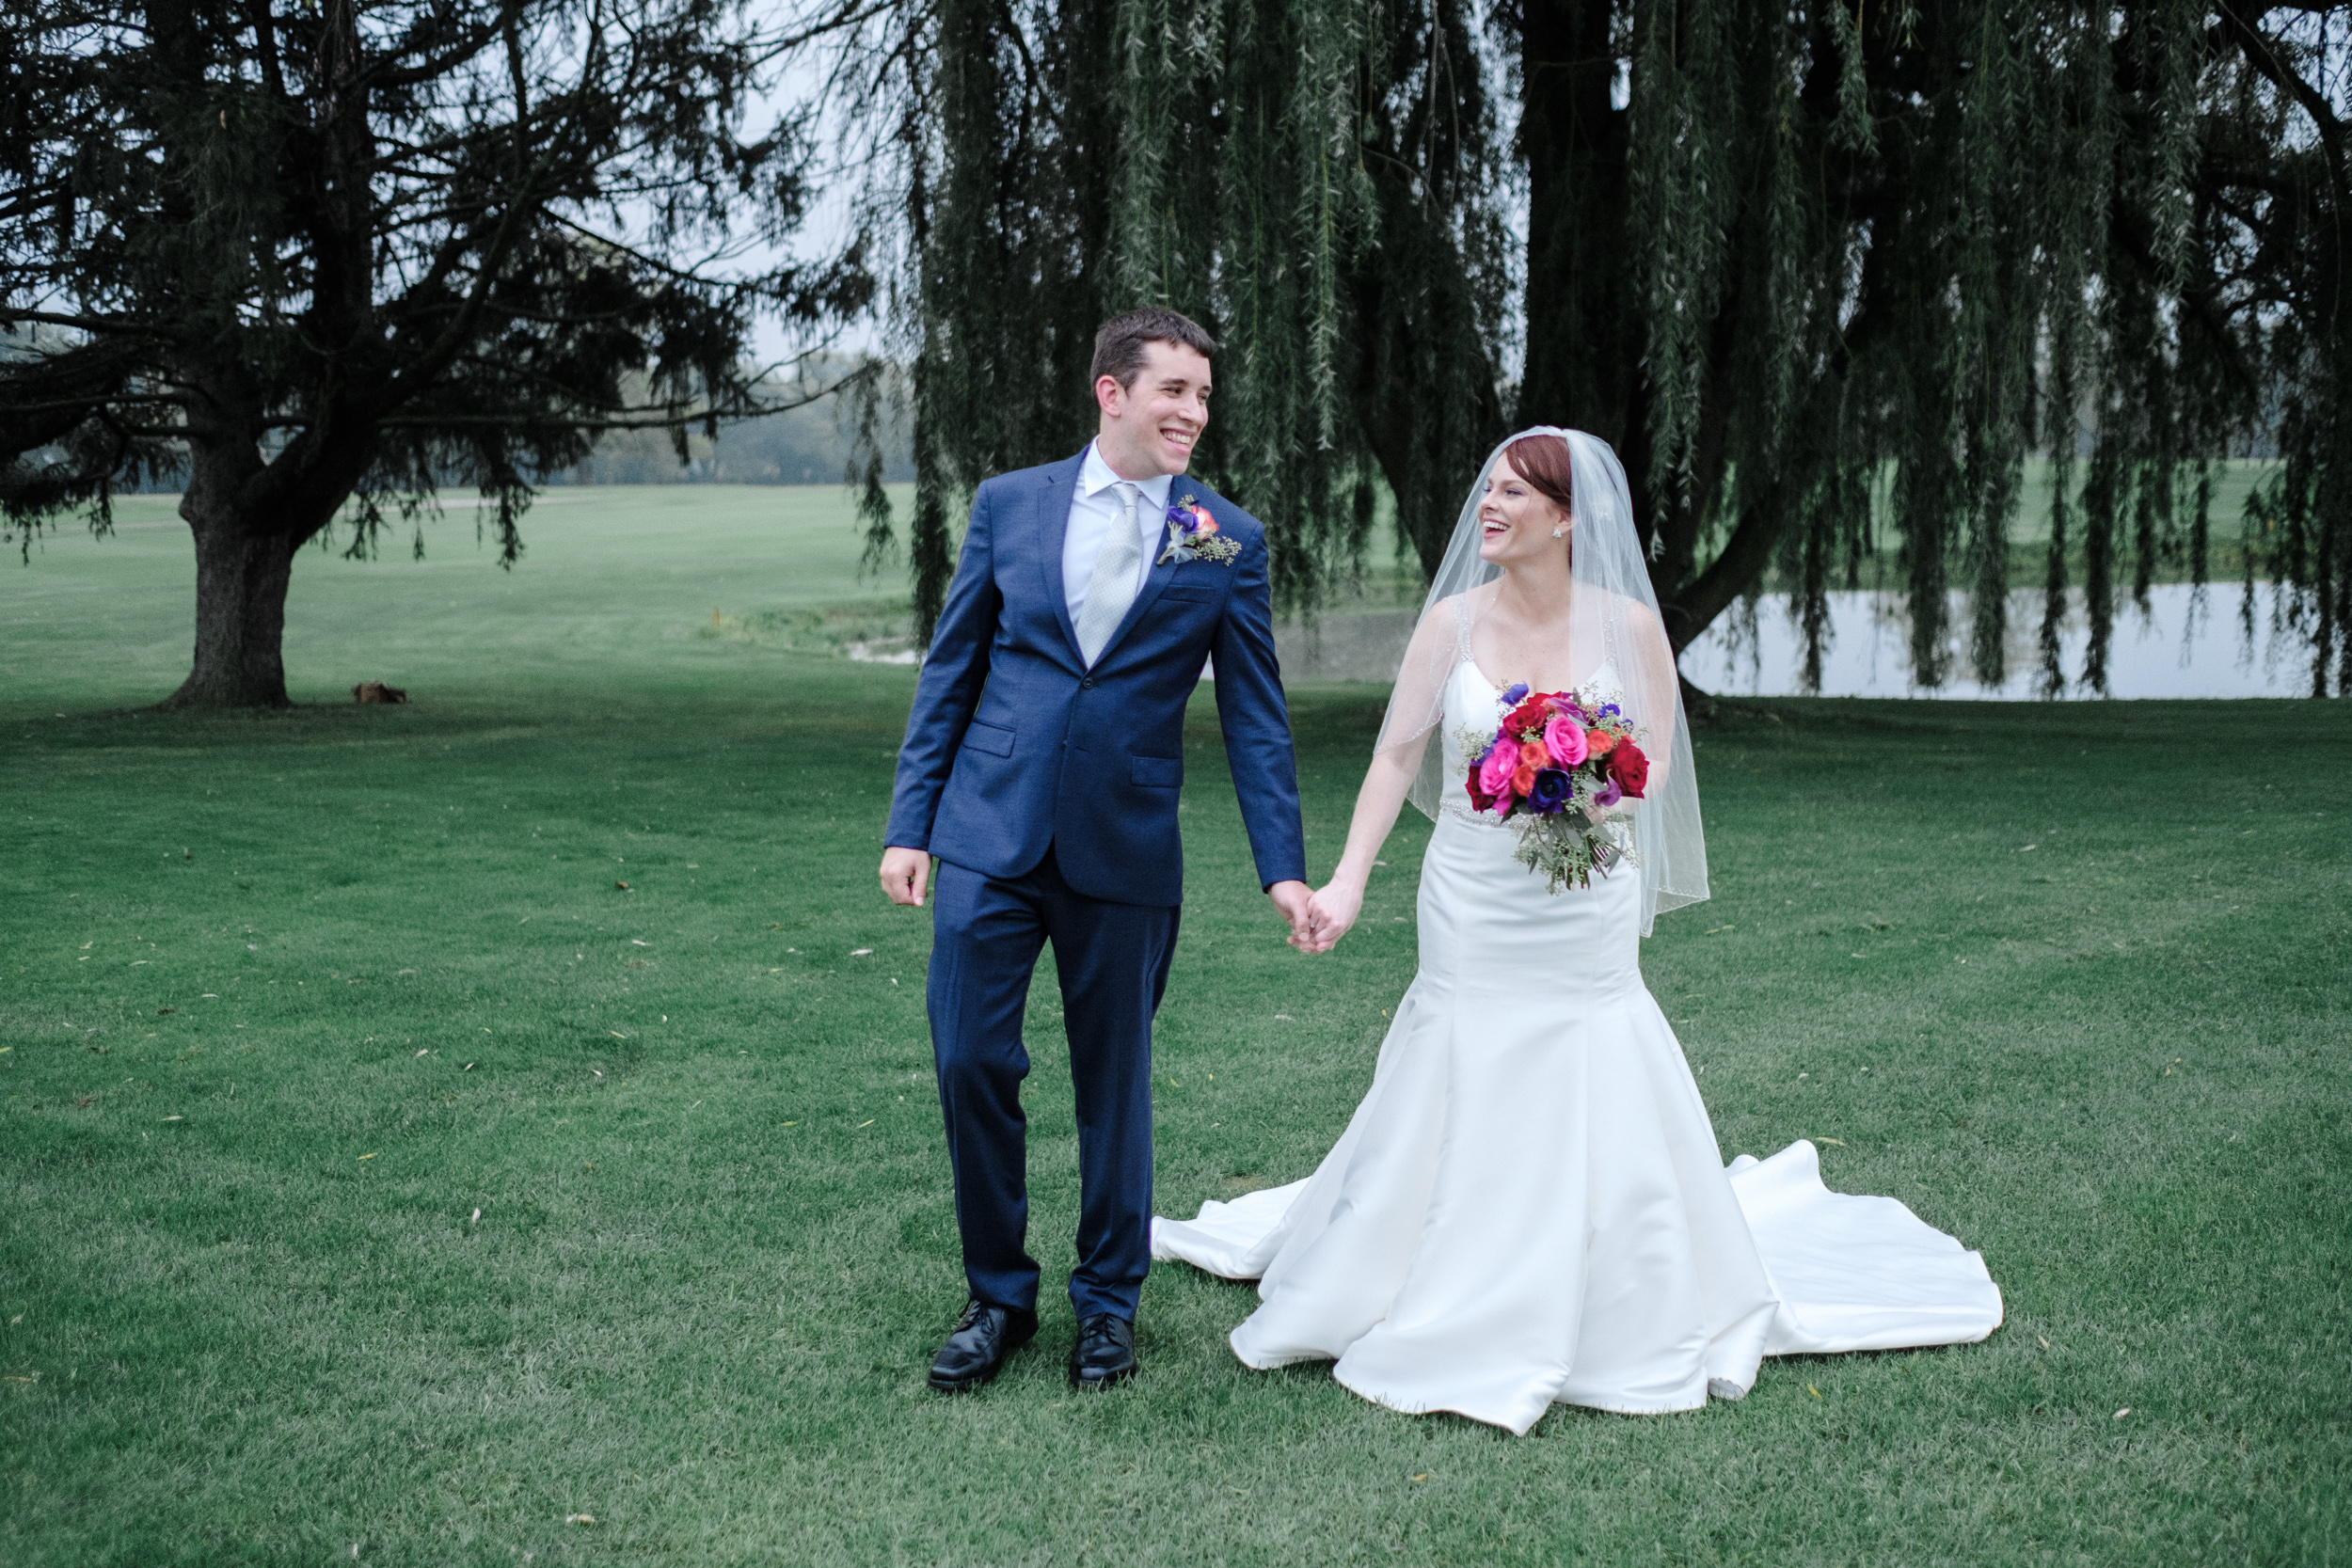 couple naturally walking on golf course for candid fun wedding portrait by best rockford wedding photographer